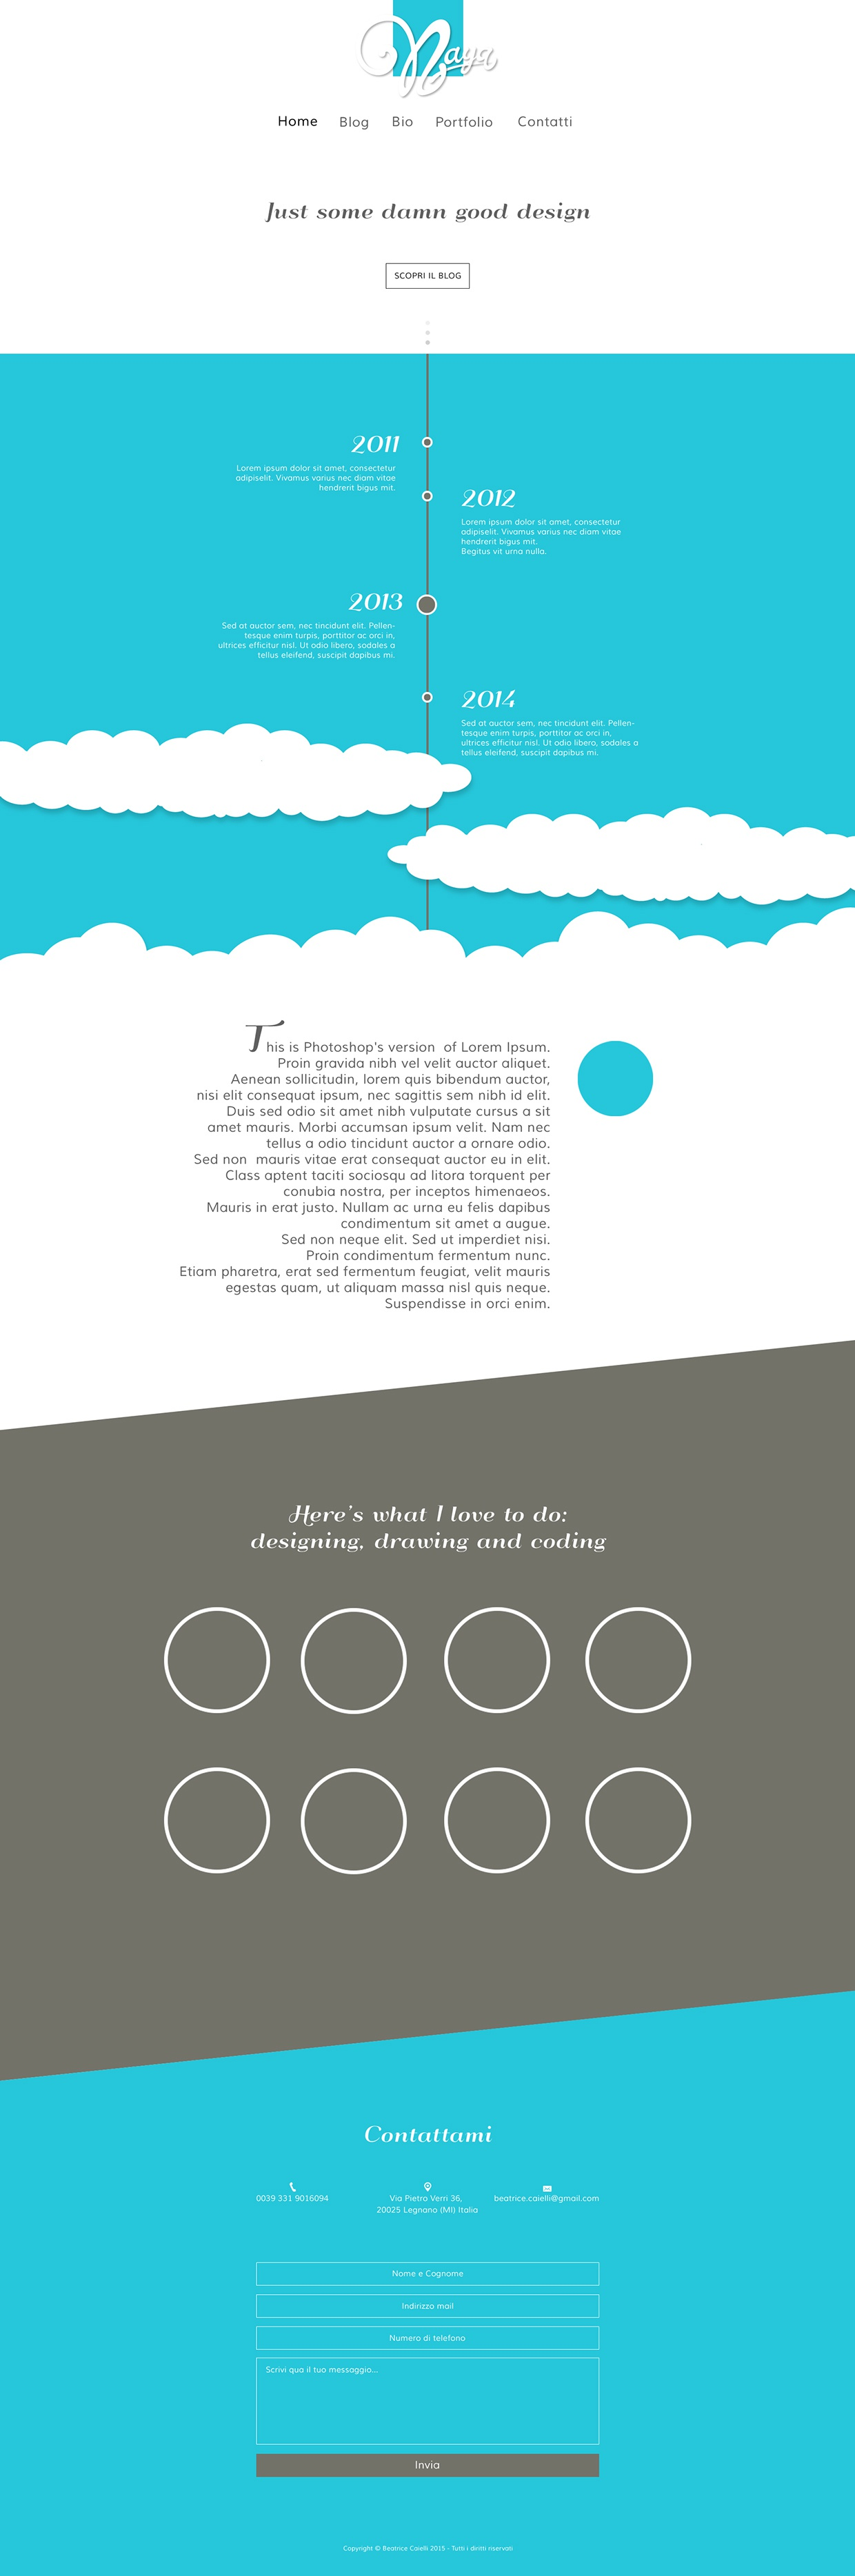 Personal website layout